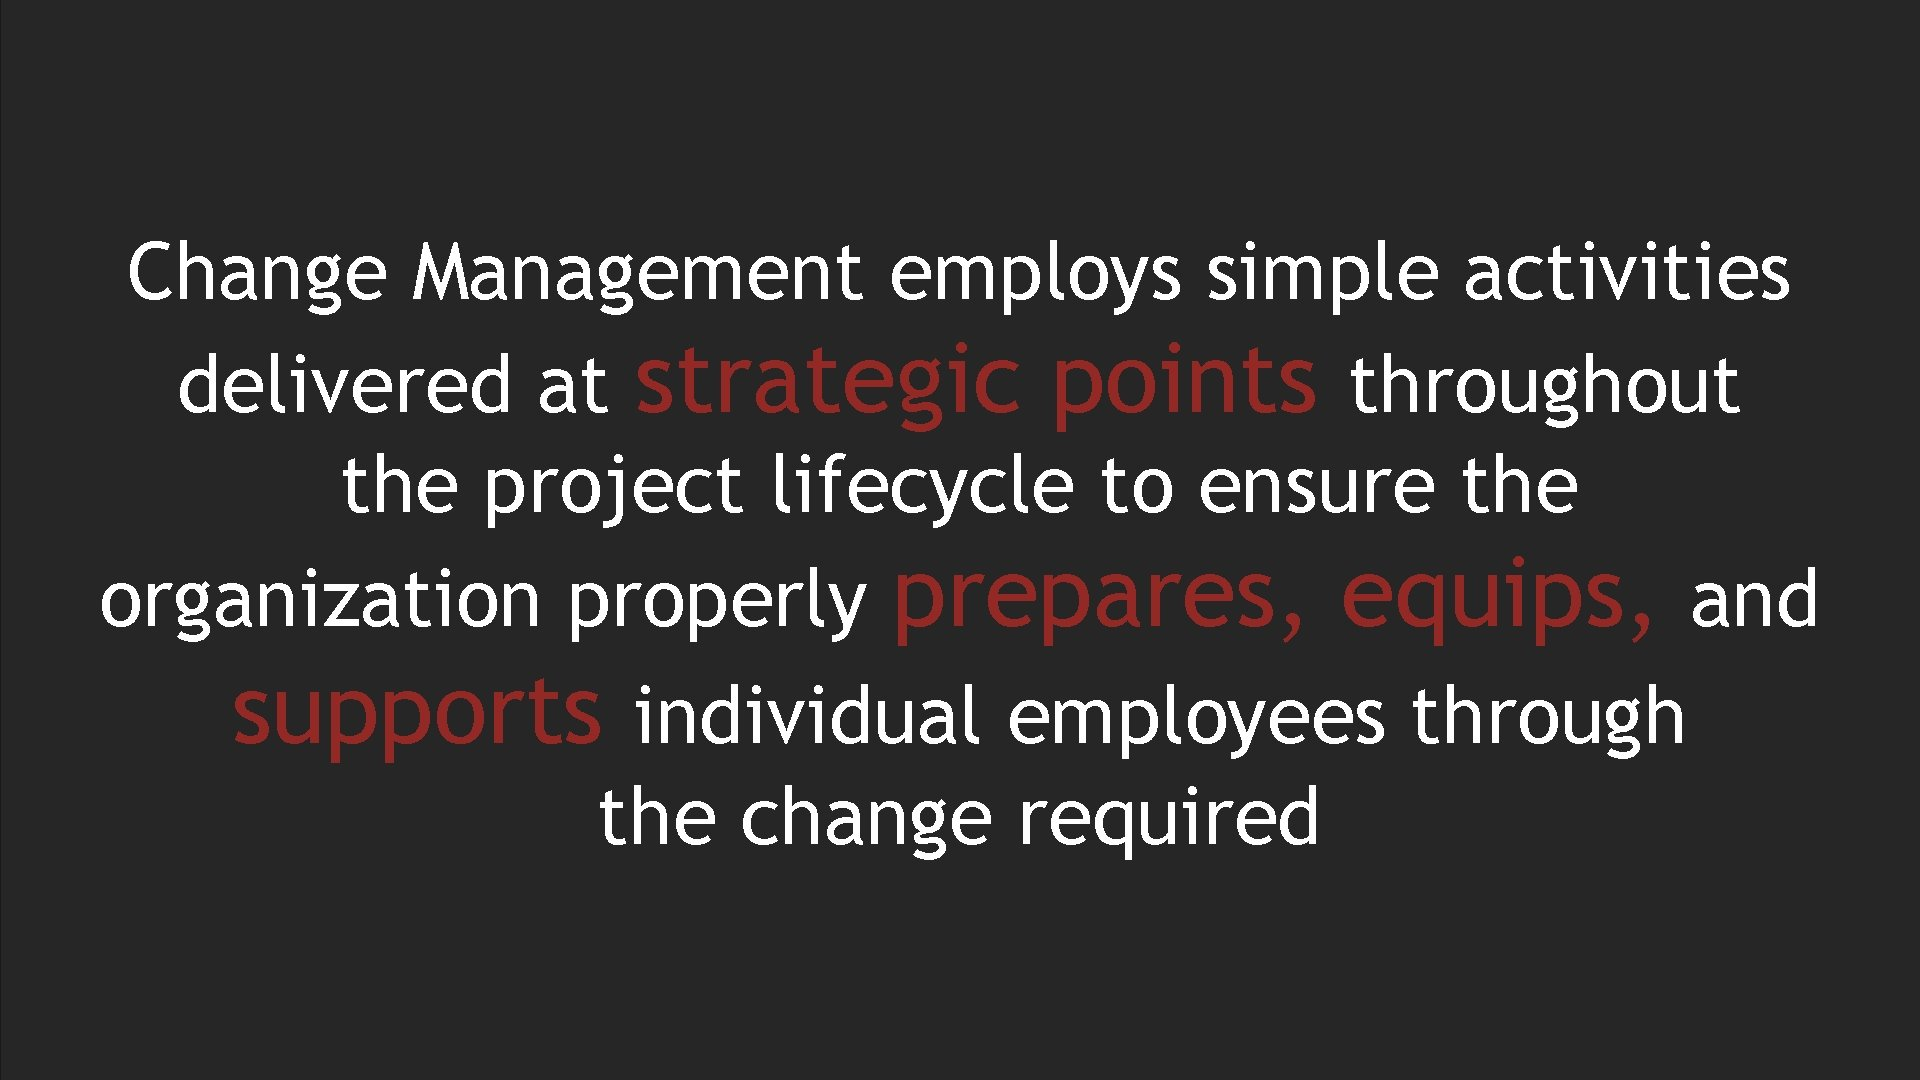 Change Management employs simple activities delivered at strategic points throughout the project lifecycle to